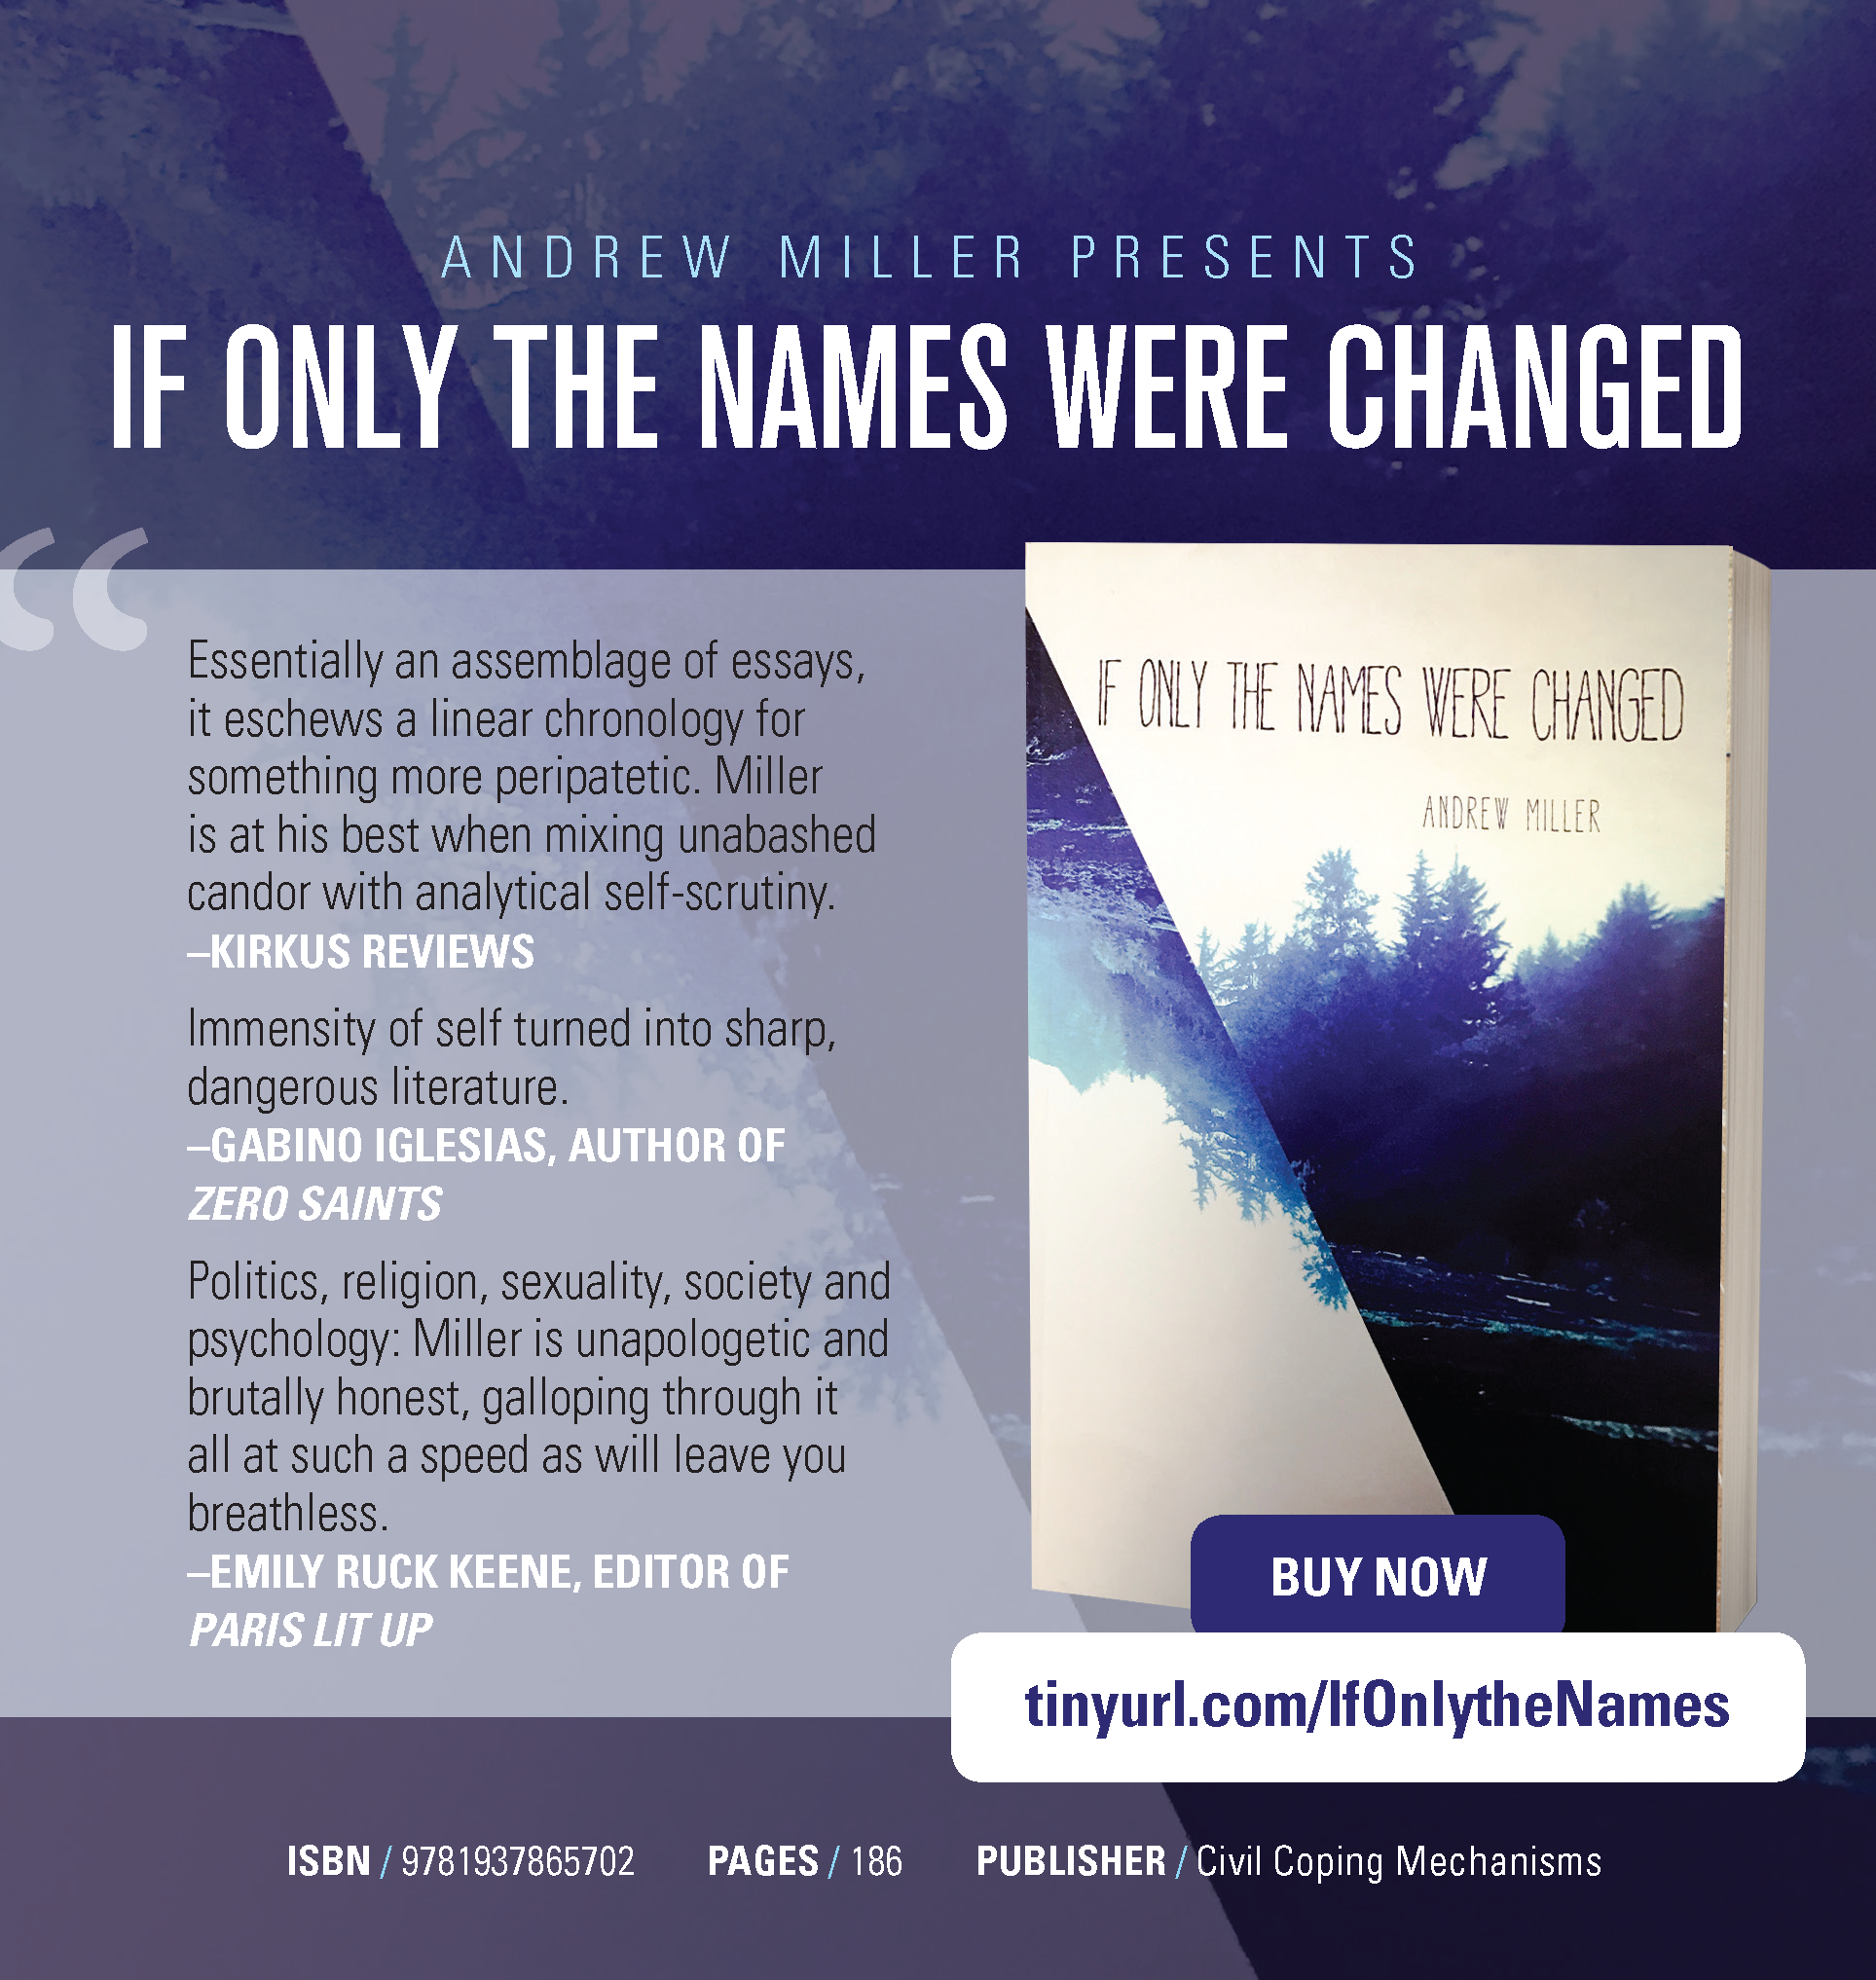 andrewmiller_one_third_page_ad_v1